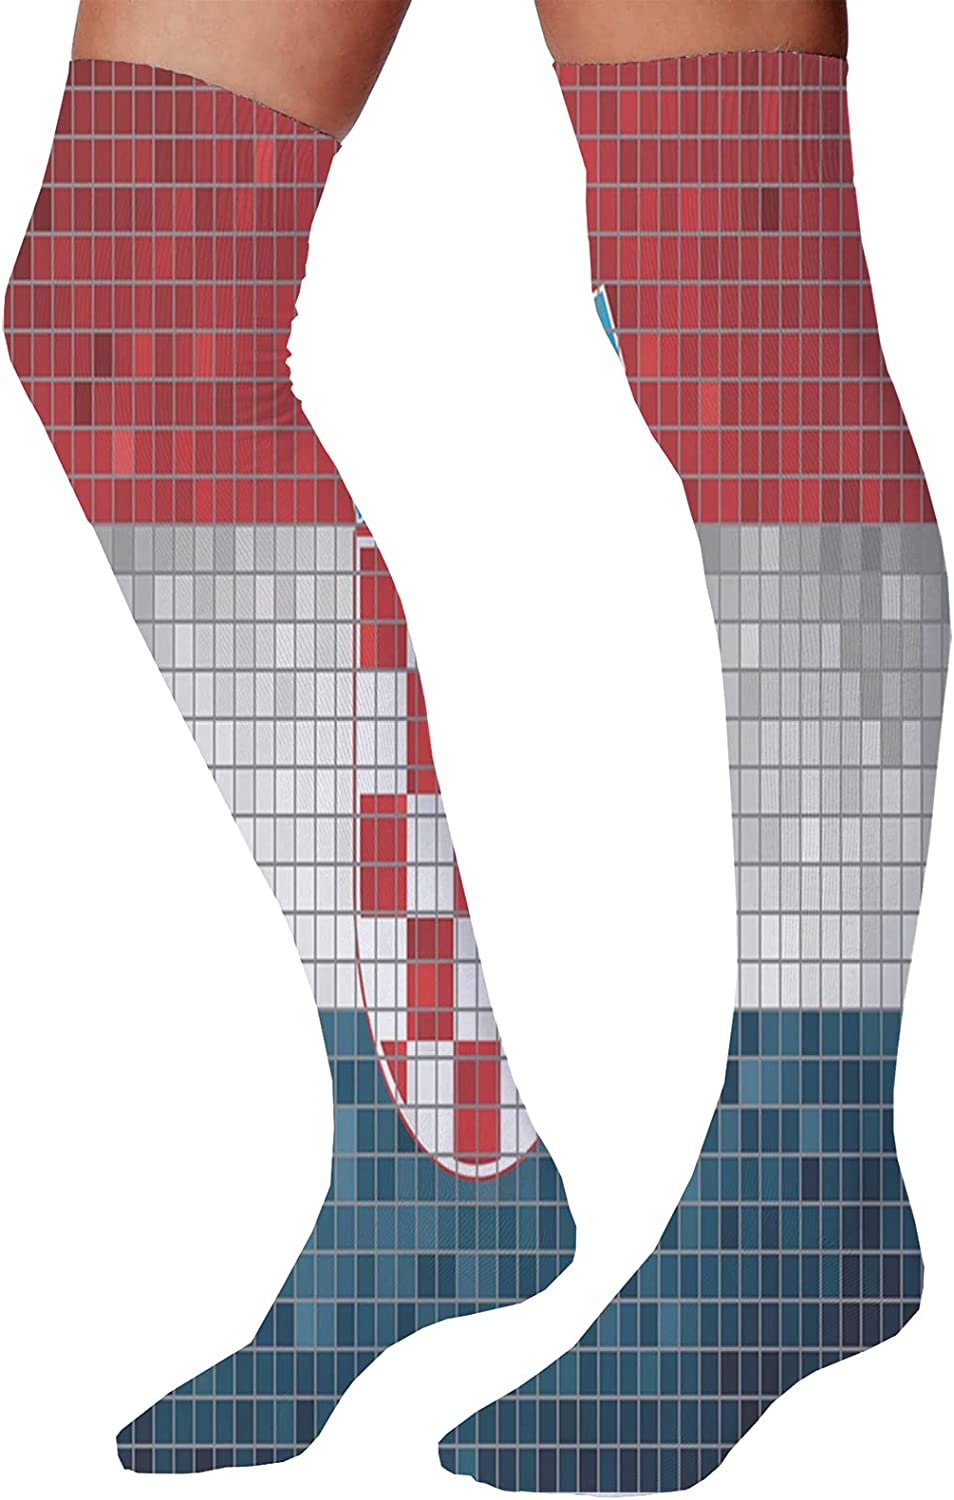 Men's and Women's Fun Socks,Abstract Illustration of Mouse Crowd Greeting Happy Full Moon in a Starry Night